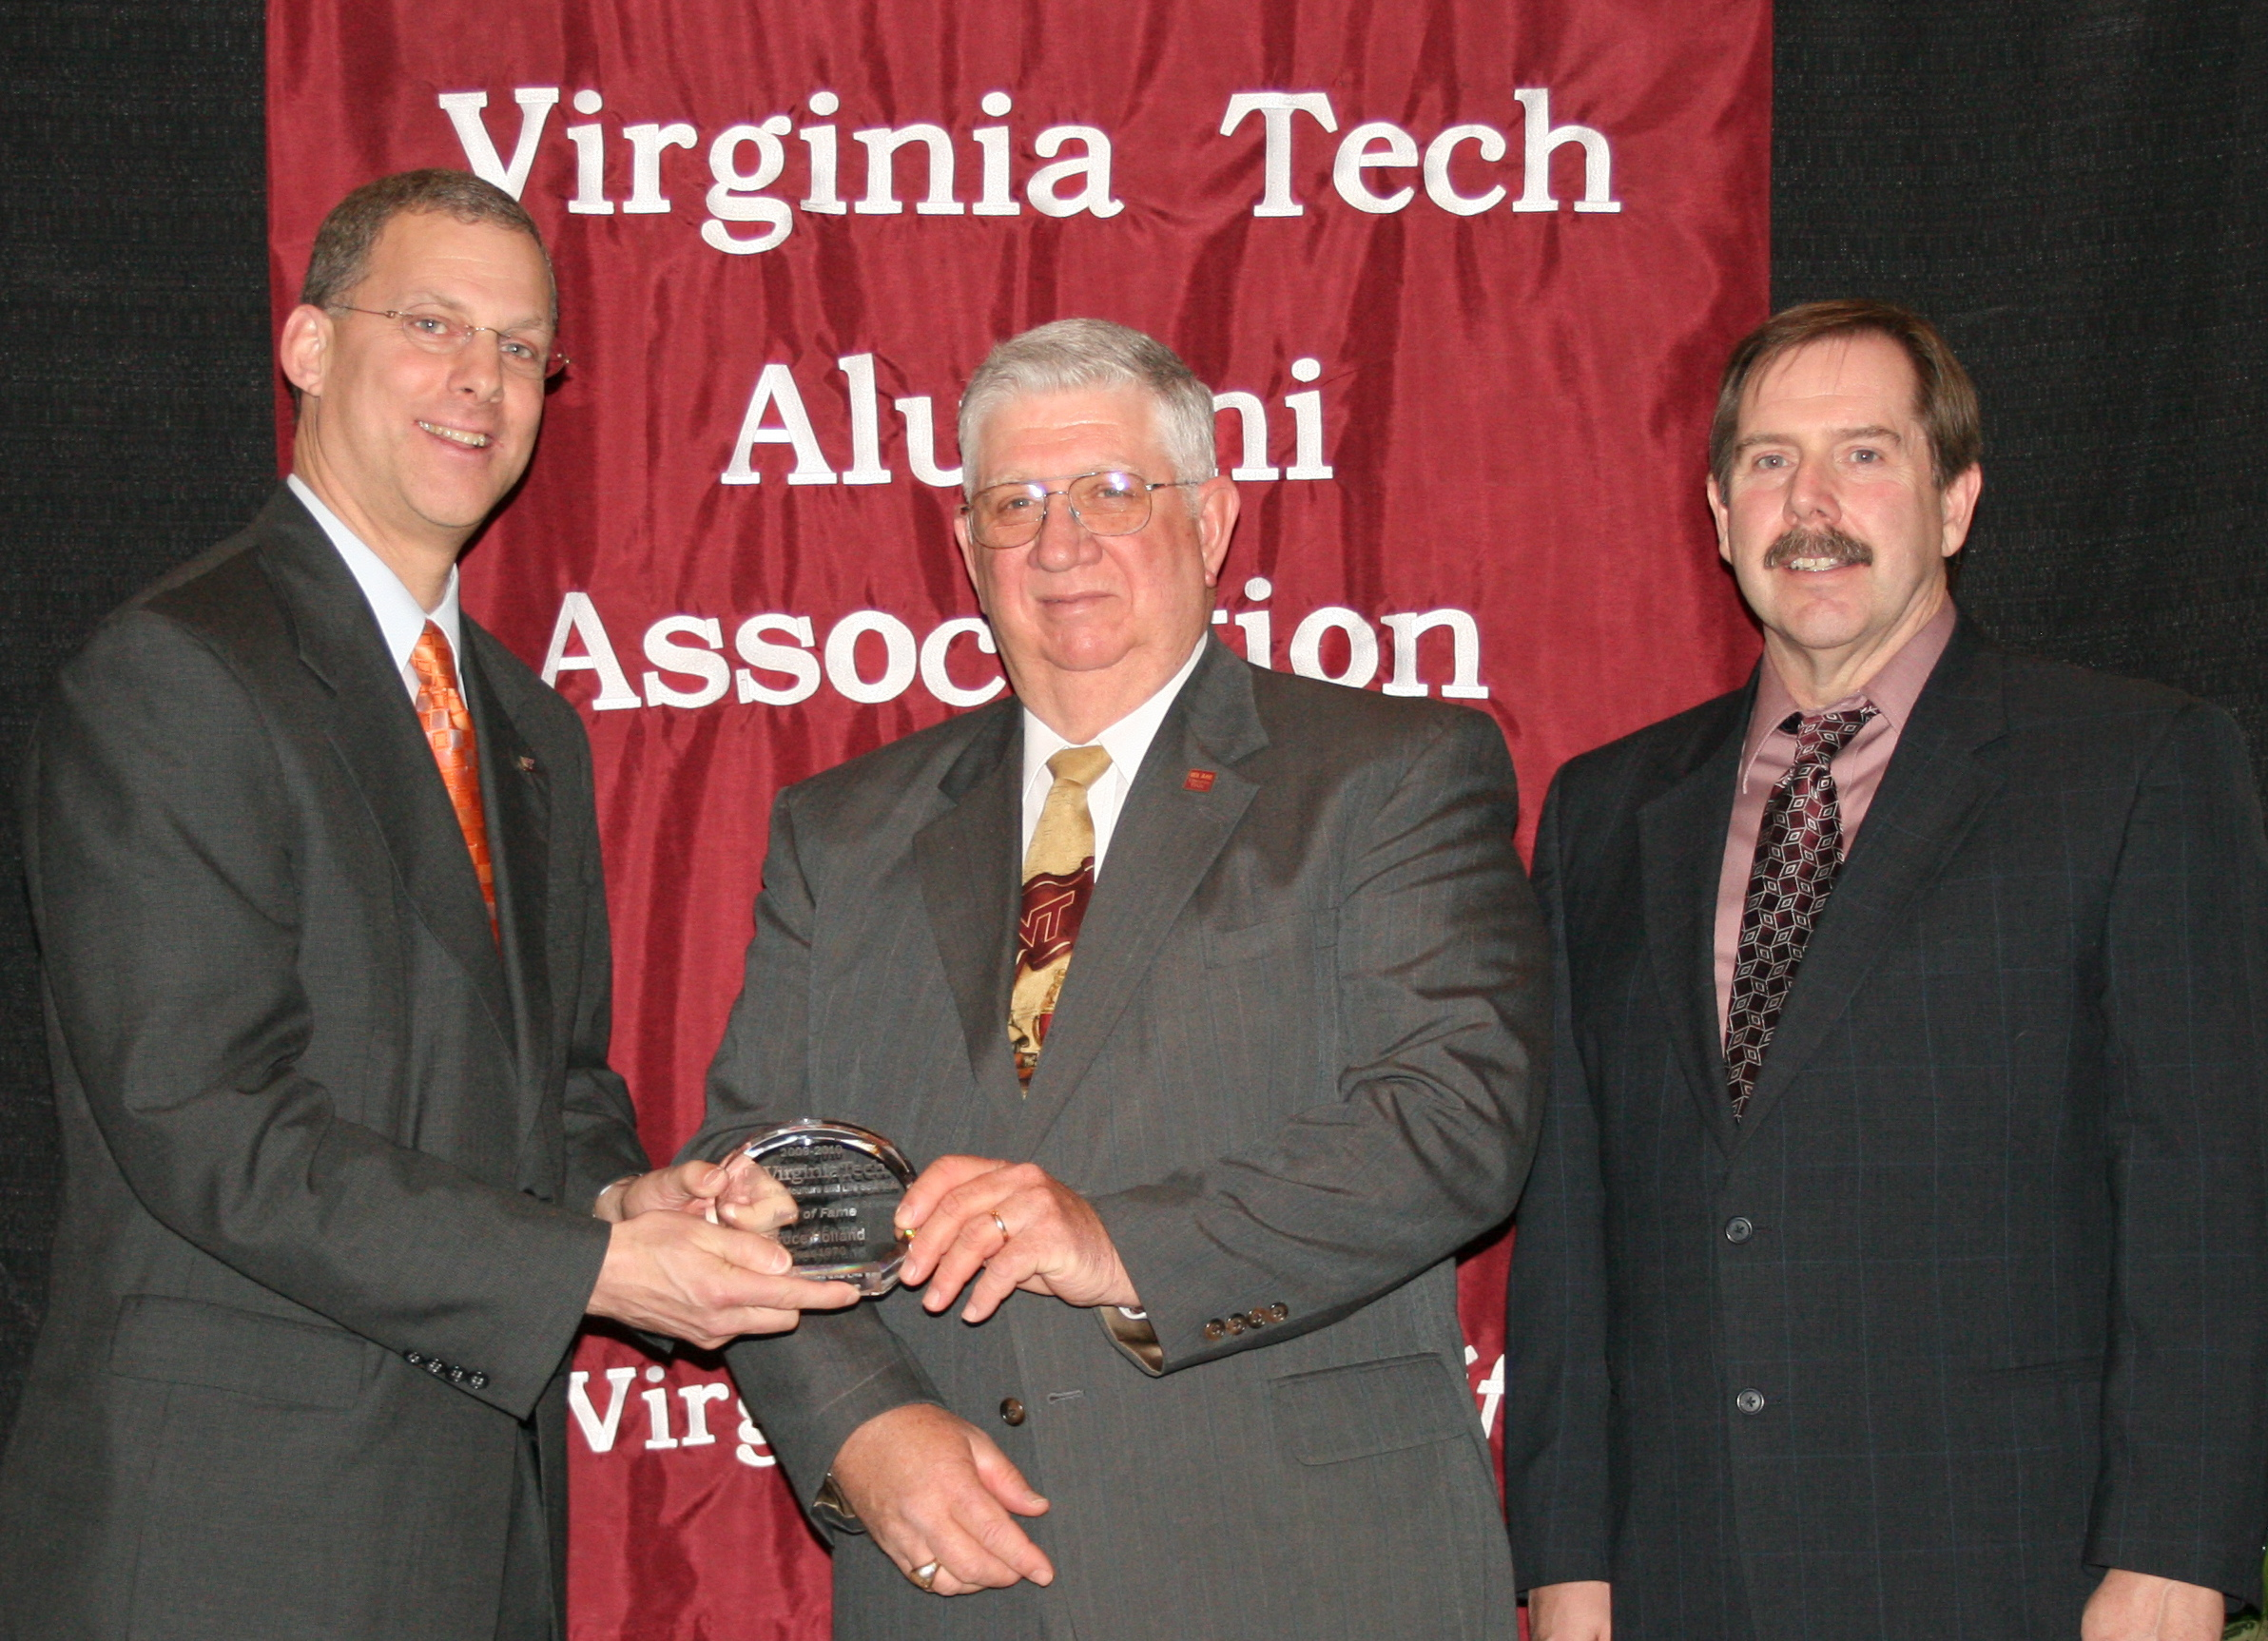 Bruce Holland (center) receives the Hall of Fame Award from Alan Grant (left), dean of the College of Agriculture and Life Sciences, and Kevin Boyle (right), professor and head of the Department of Agricultural and Applied Economics, at the annual Alumni Awards Program on March 5, 2010.